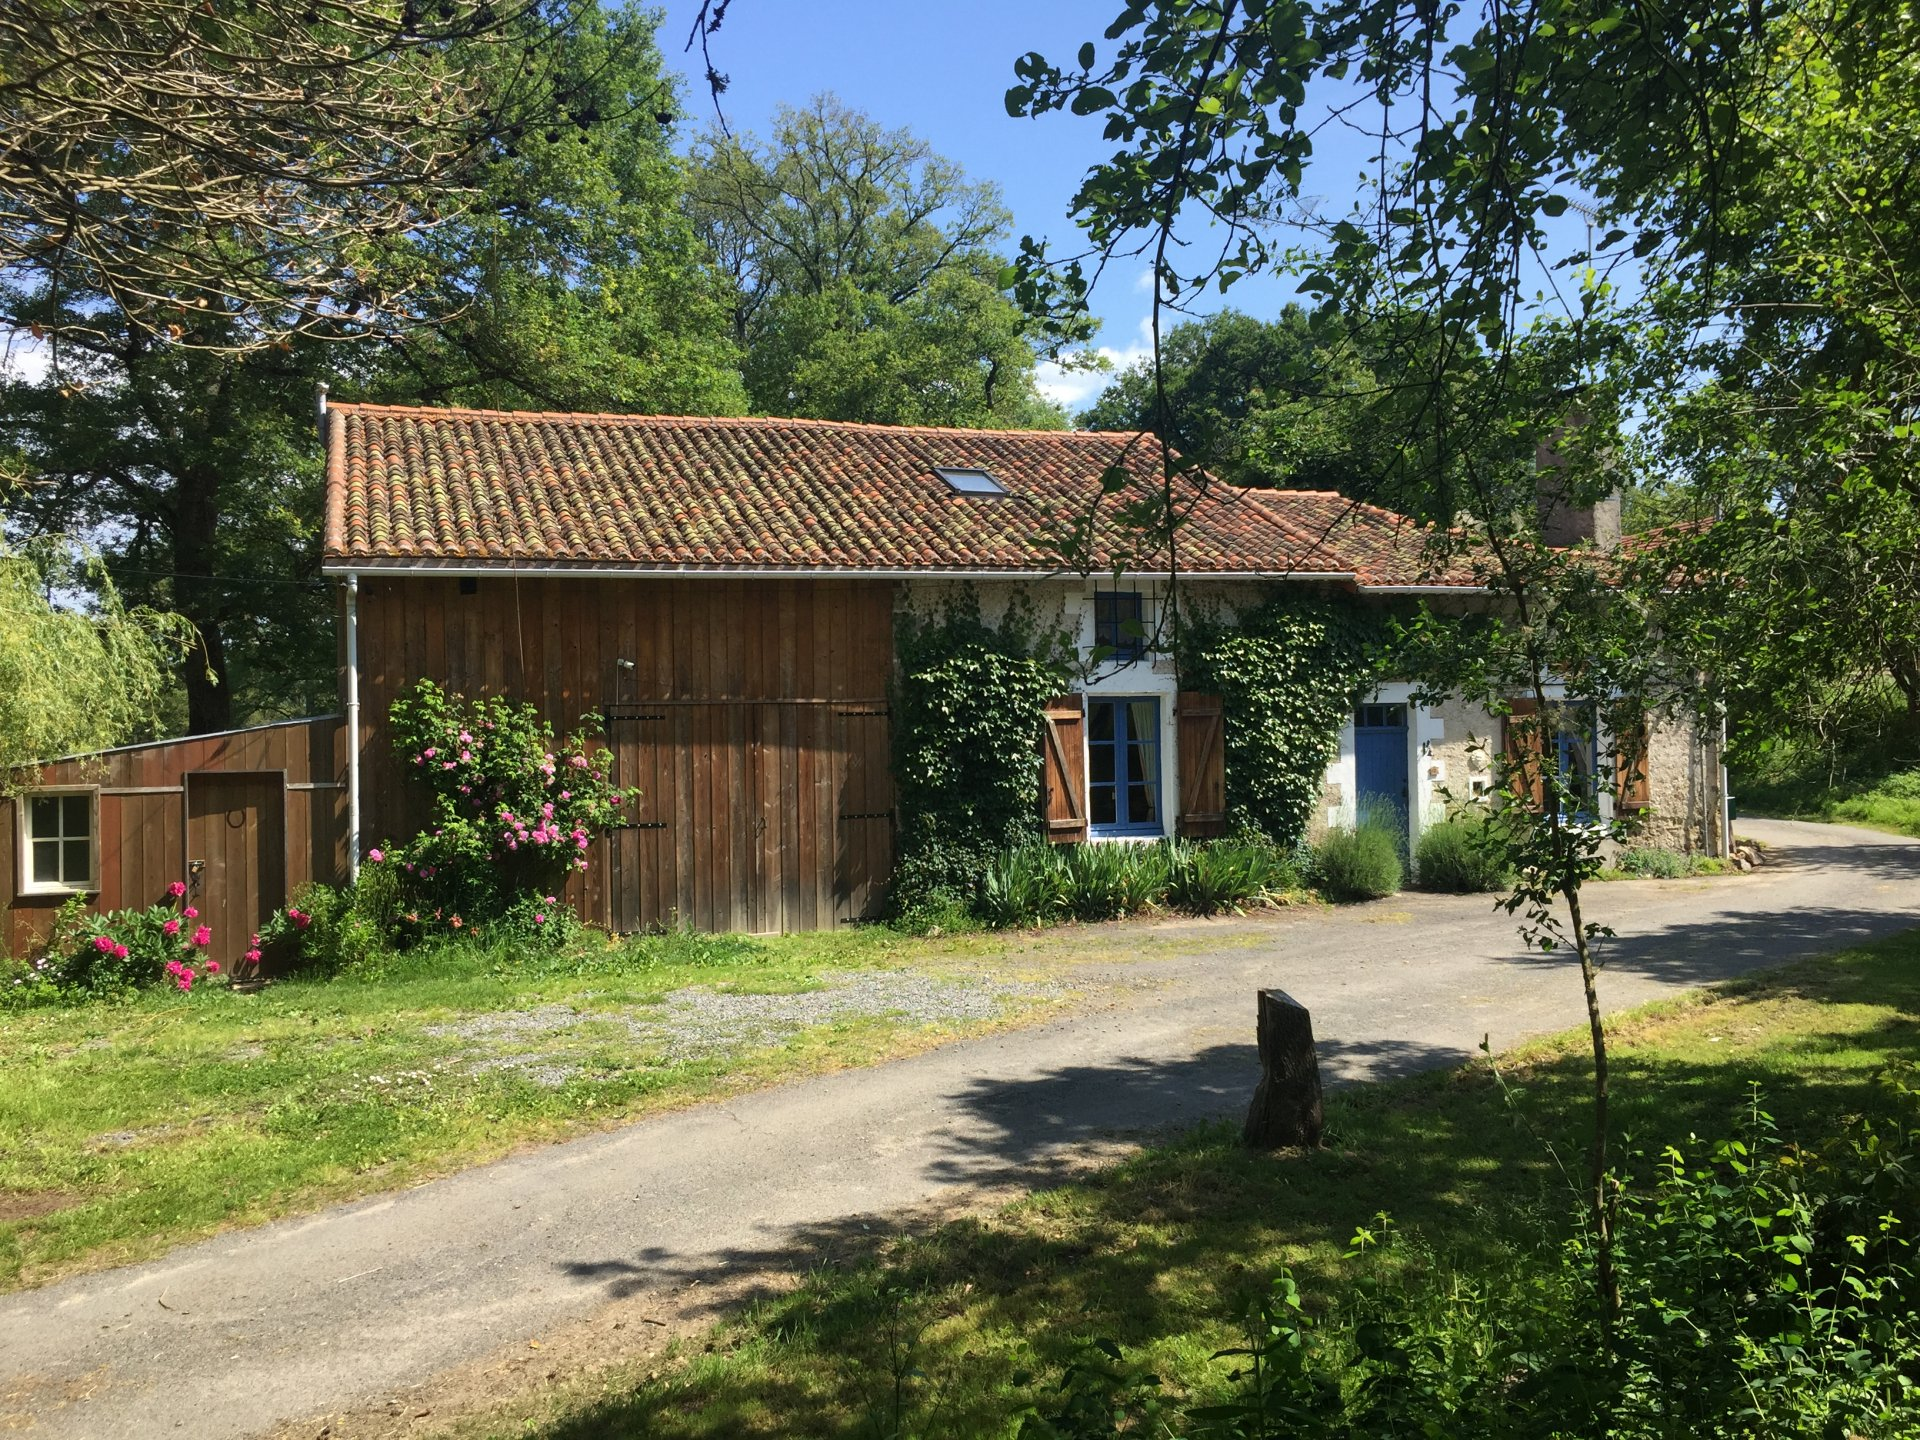 Idylllic setting for this 3 bedroom renovated farm house with land